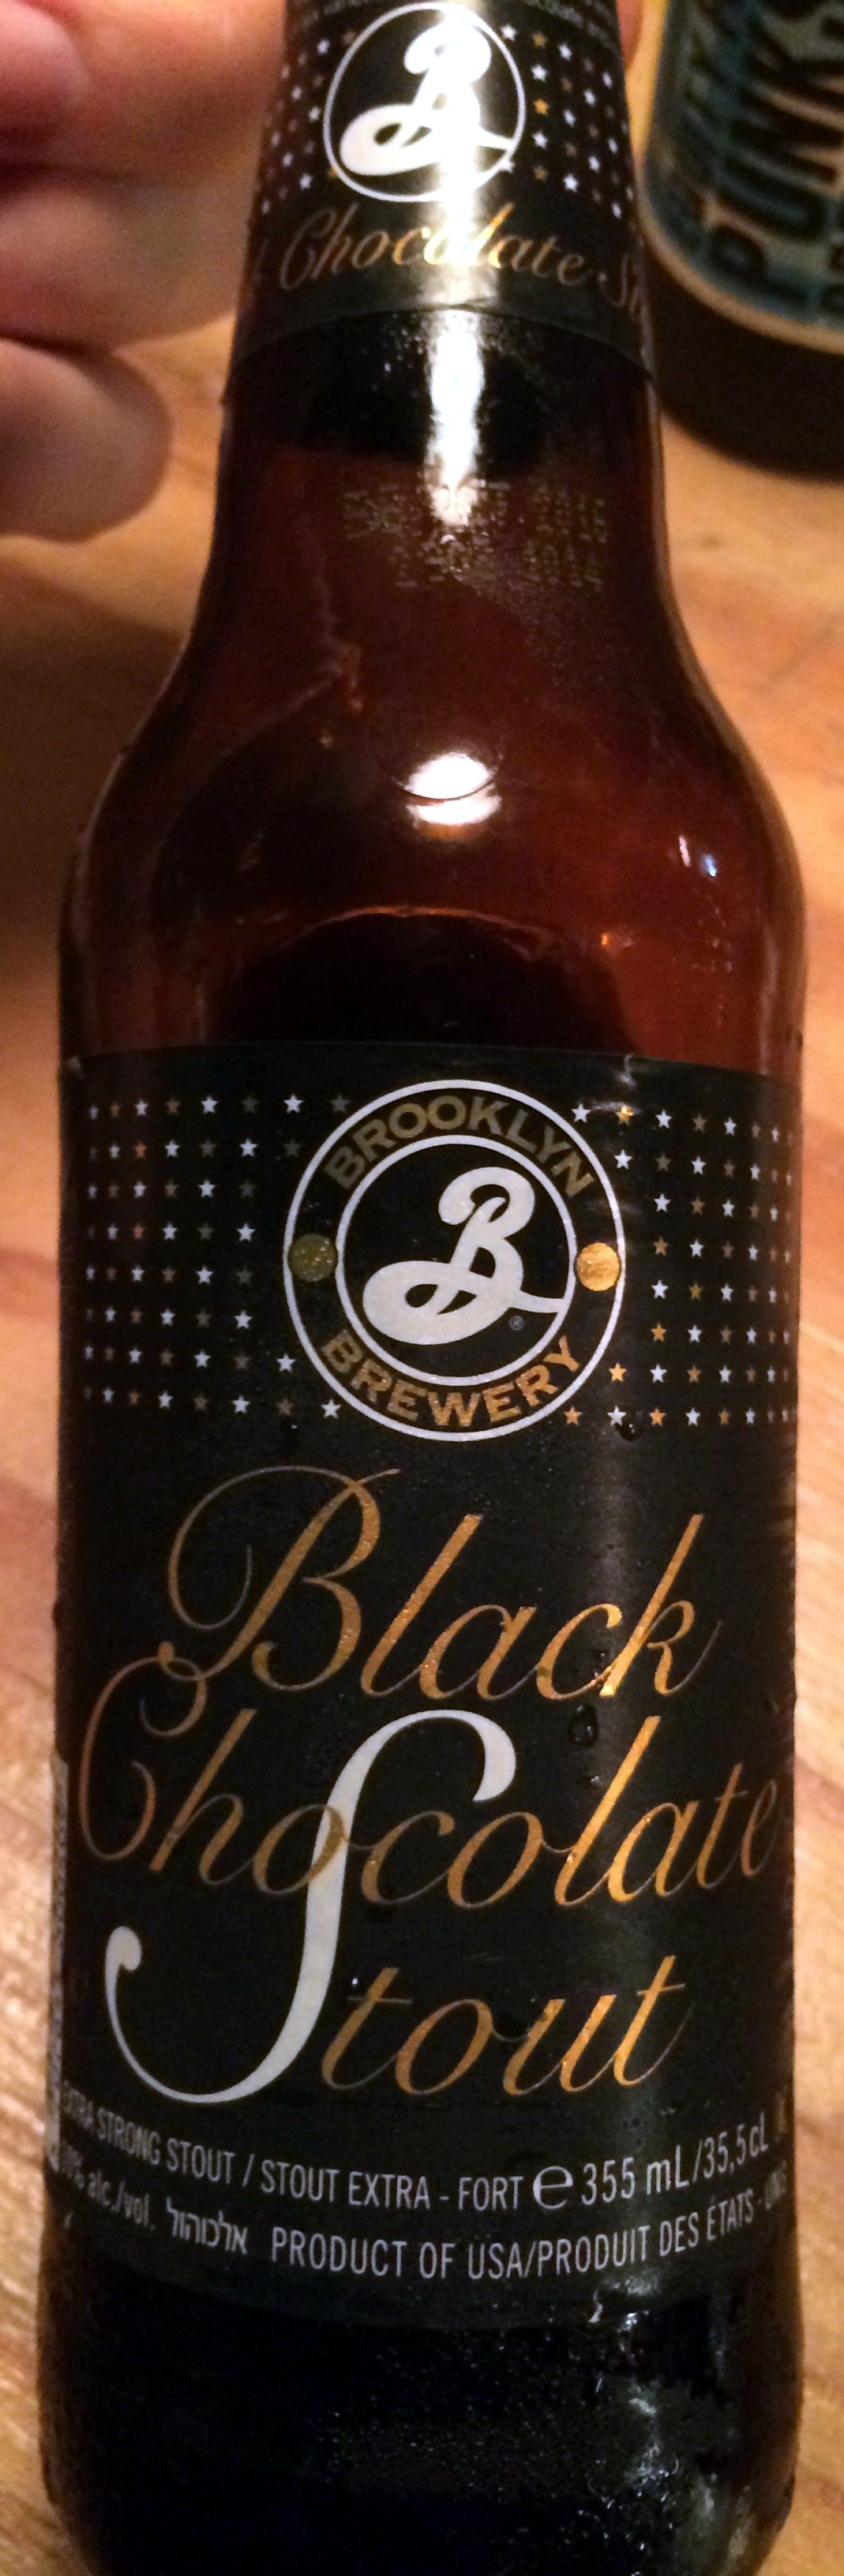 Black Chocolate Stout - Product - fr